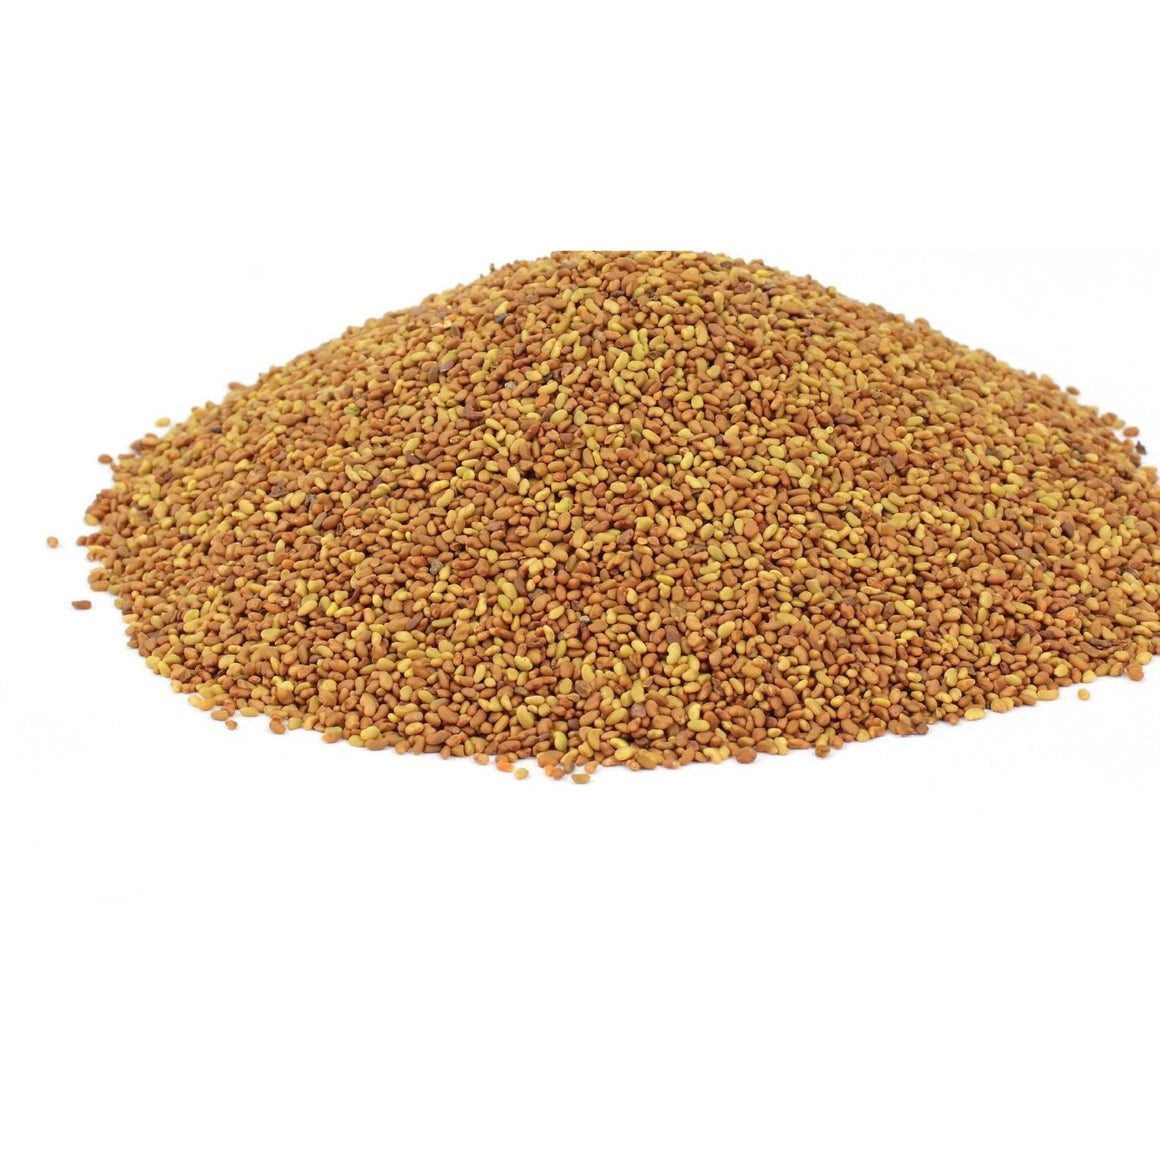 Alfalfa Seed - For Organic Sprouted Seed Tea